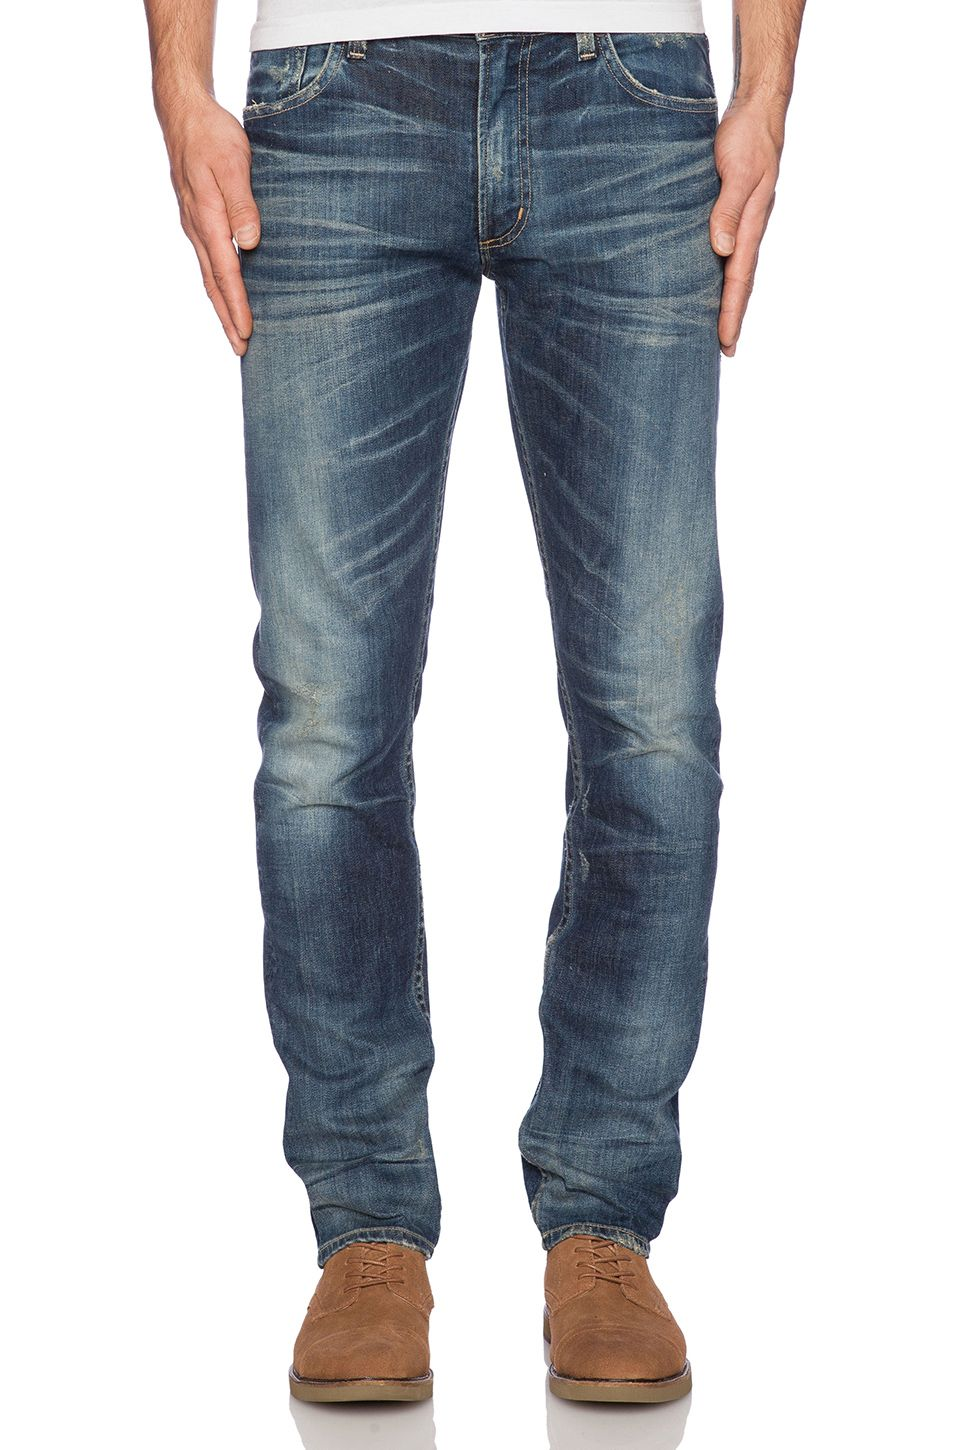 Jeans Bowery blue Citizens Of Humanity 2L0lGYpX